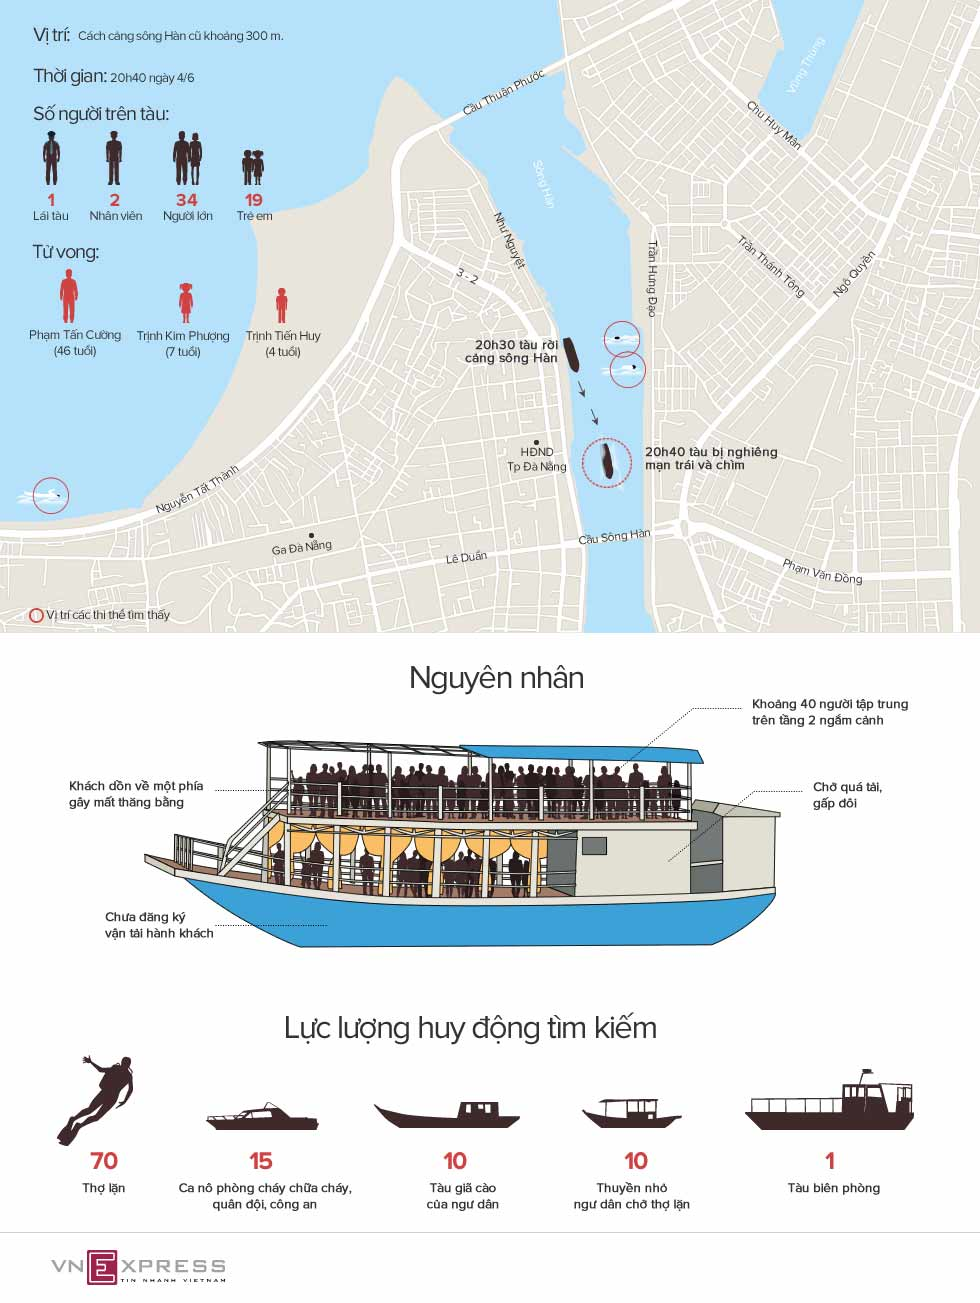 infographic: tau thao van 2 lat tren song han nhu the nao? hinh anh 1